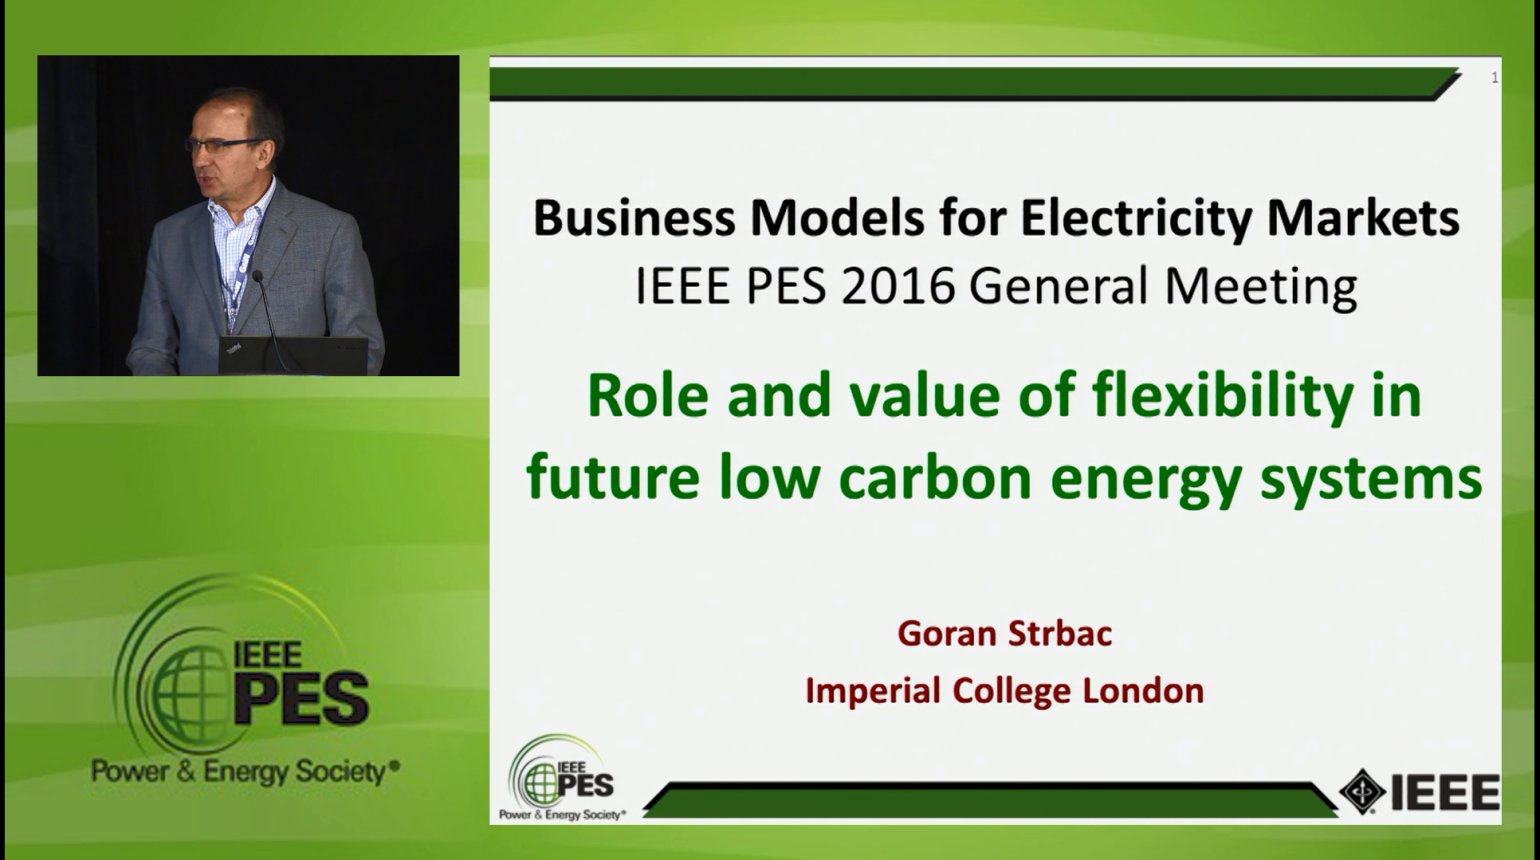 Business Models for Electricity Market - Role and value of flexibility in future low carbon energy systems (Video)